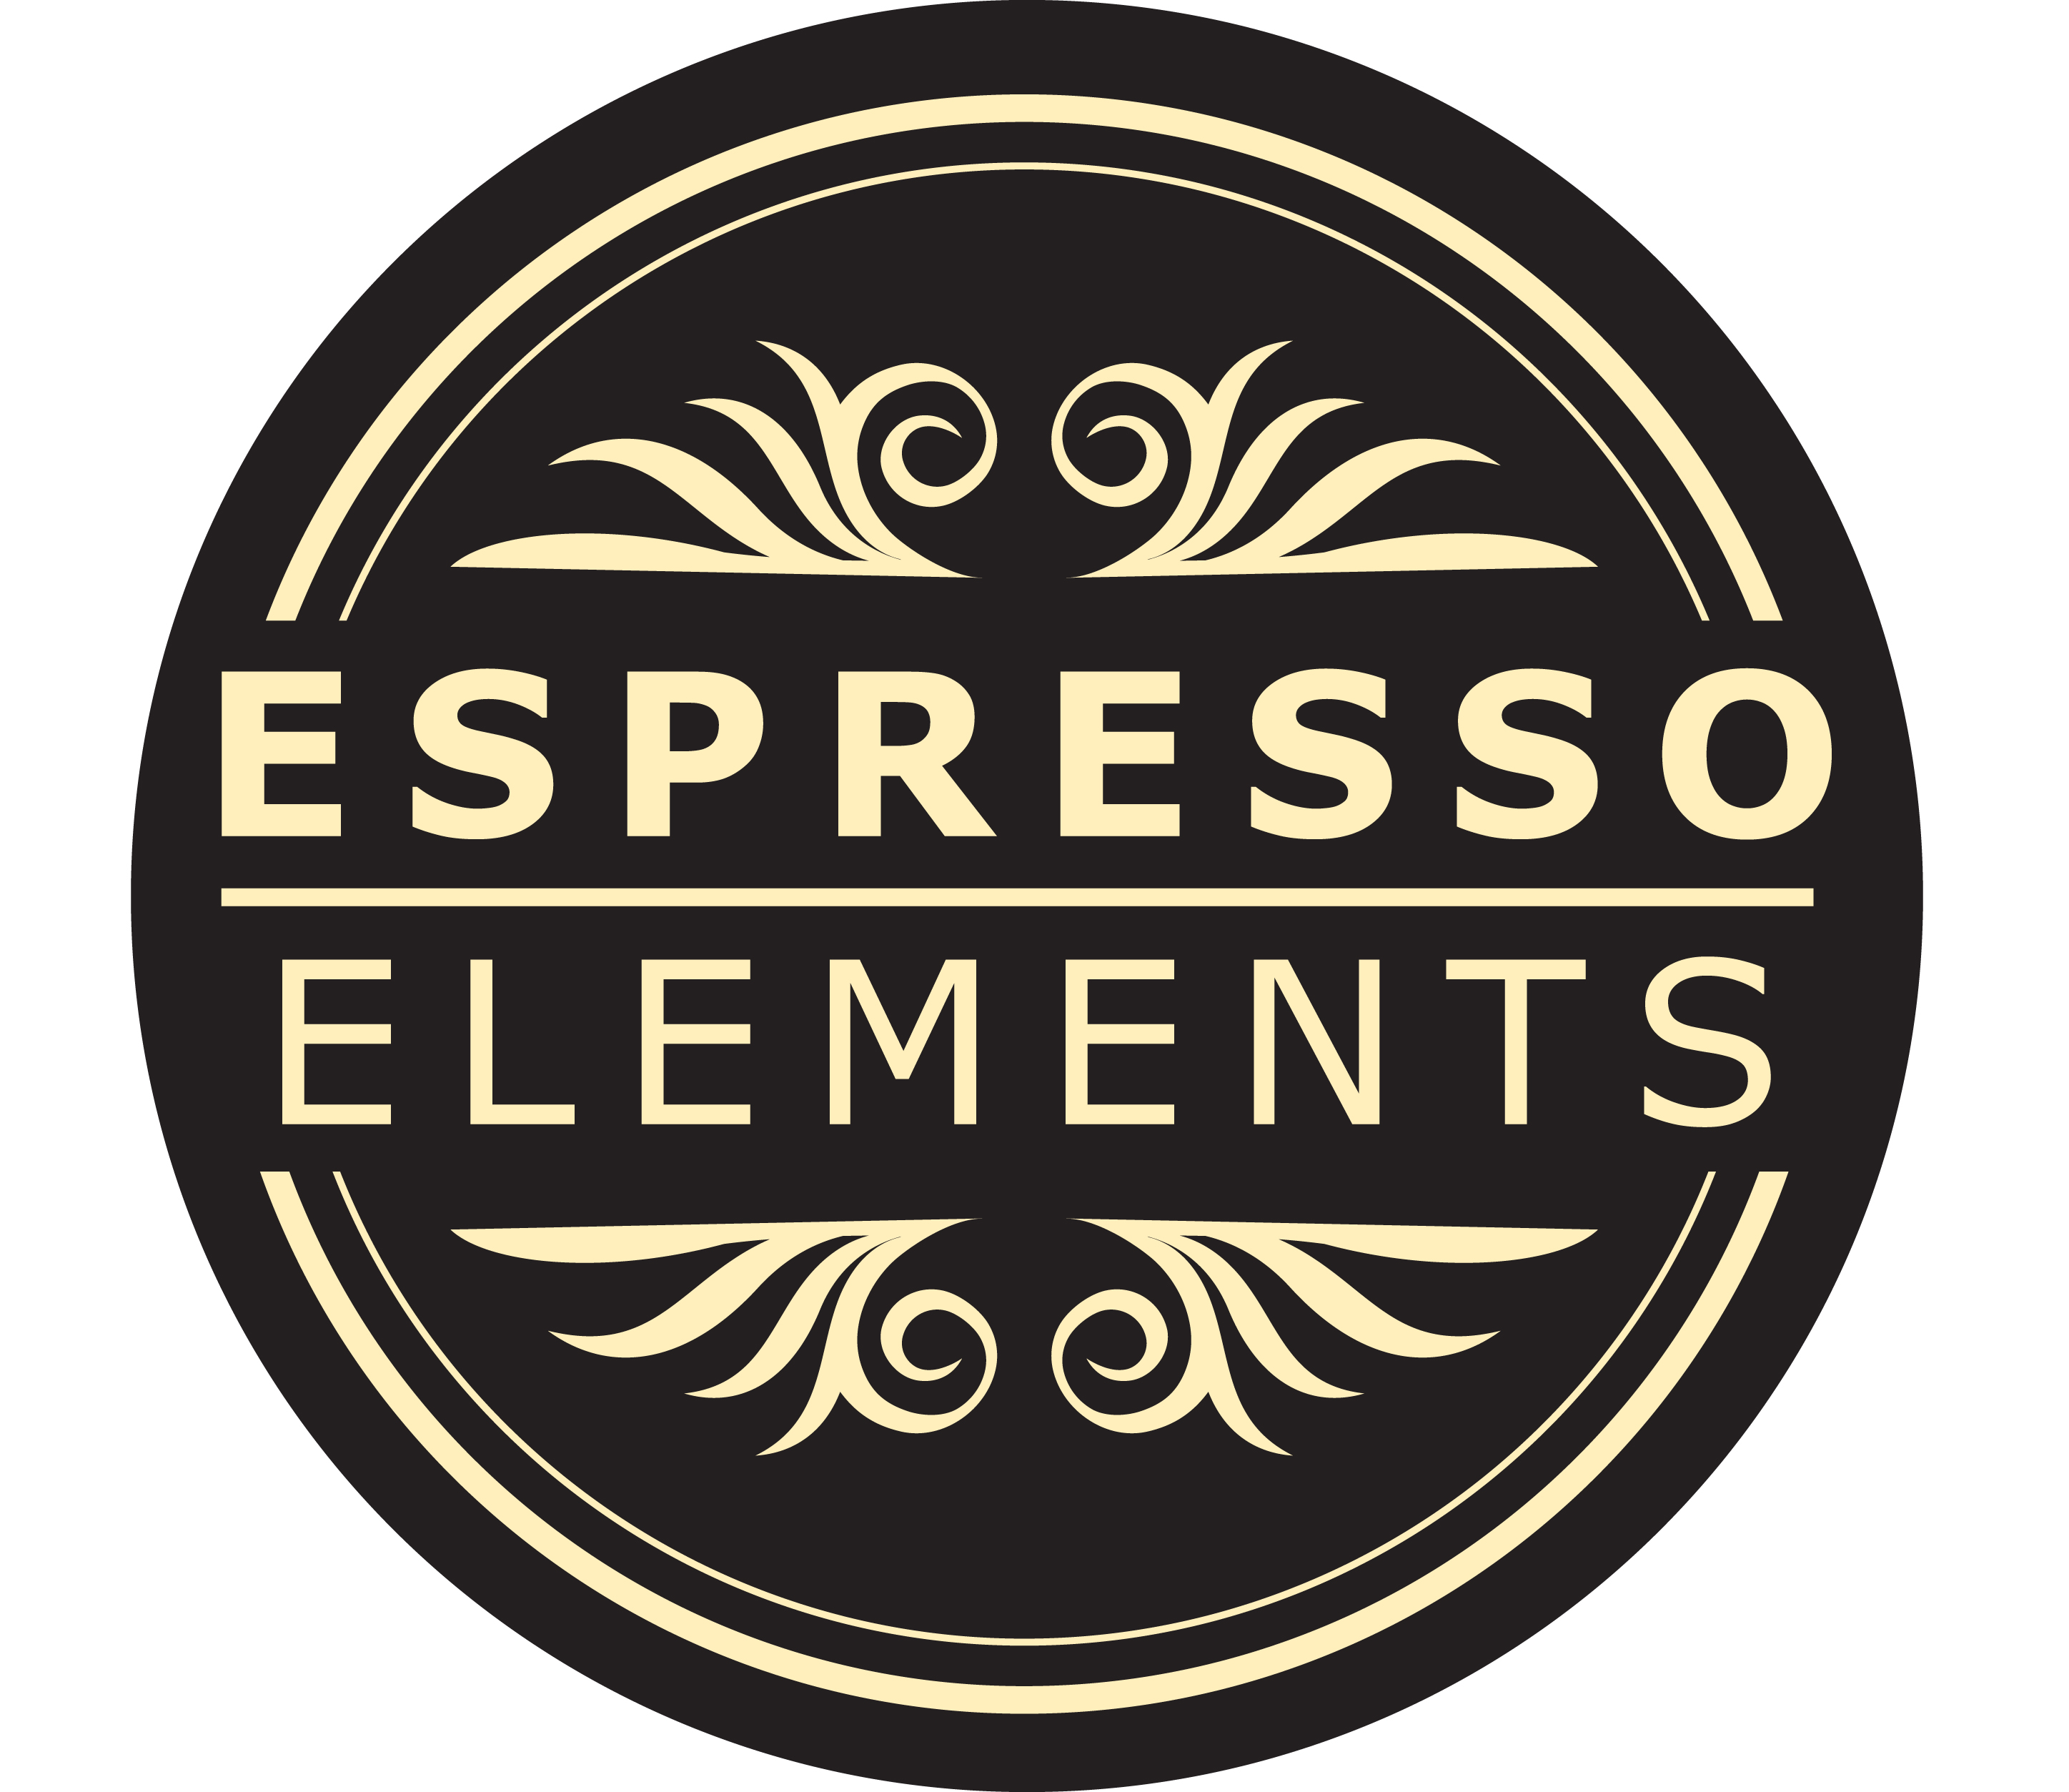 ESPRESSO ELEMENTS Logo